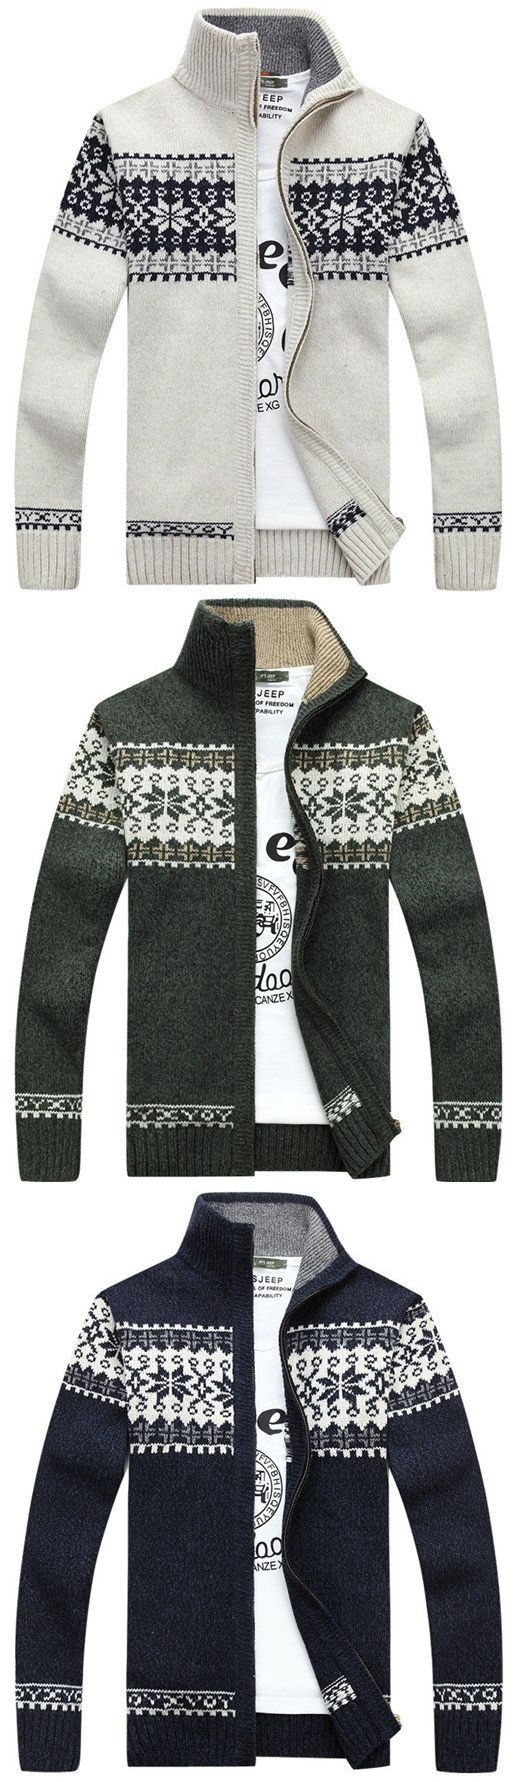 All Kinds of sweaters for men. Don't miss the big deals on Newchic.